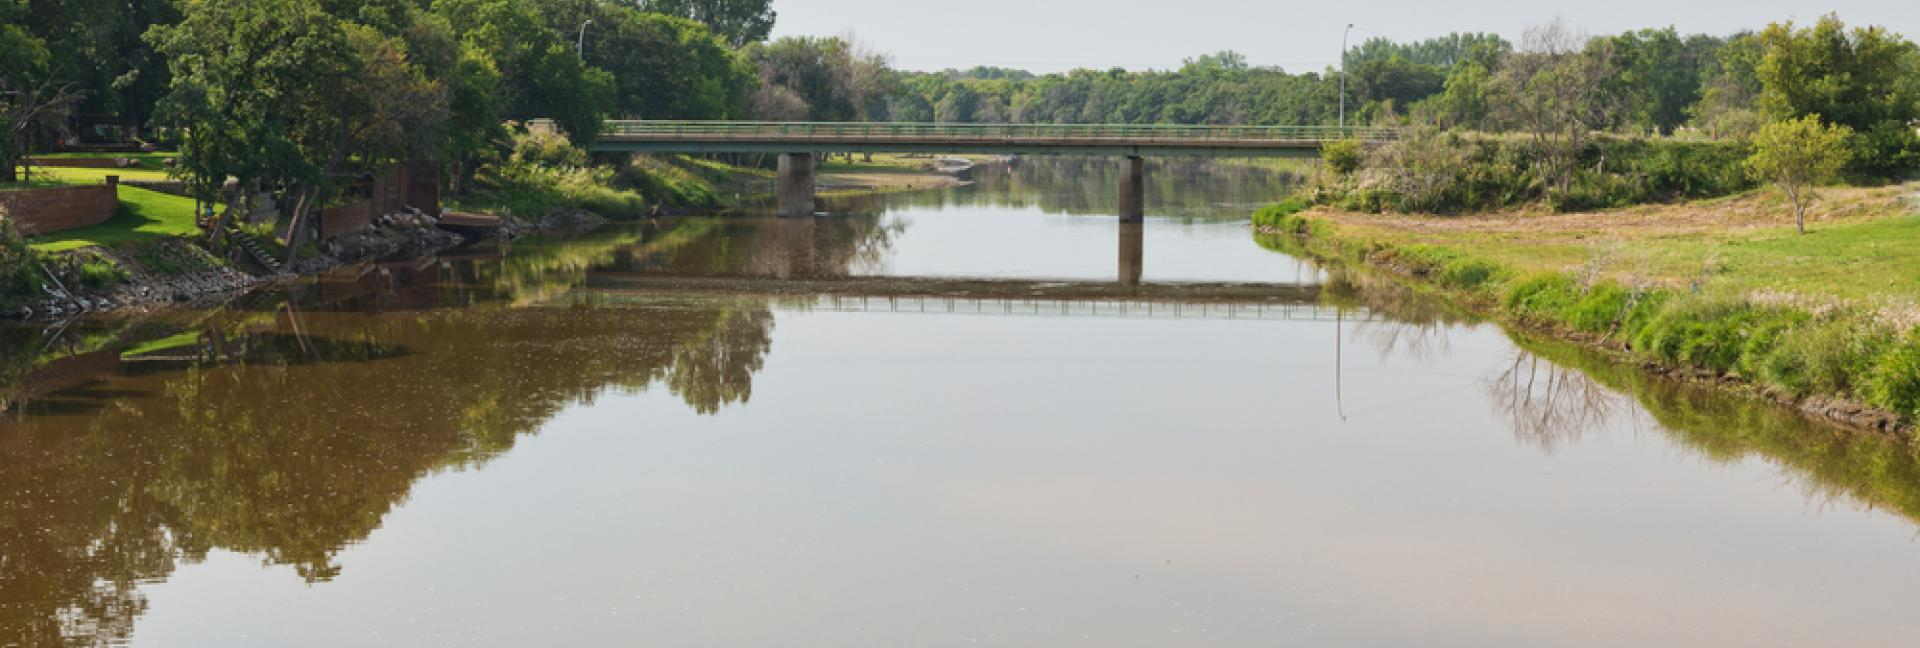 Image of the bridge over the Souris River in Manitoba, Canada